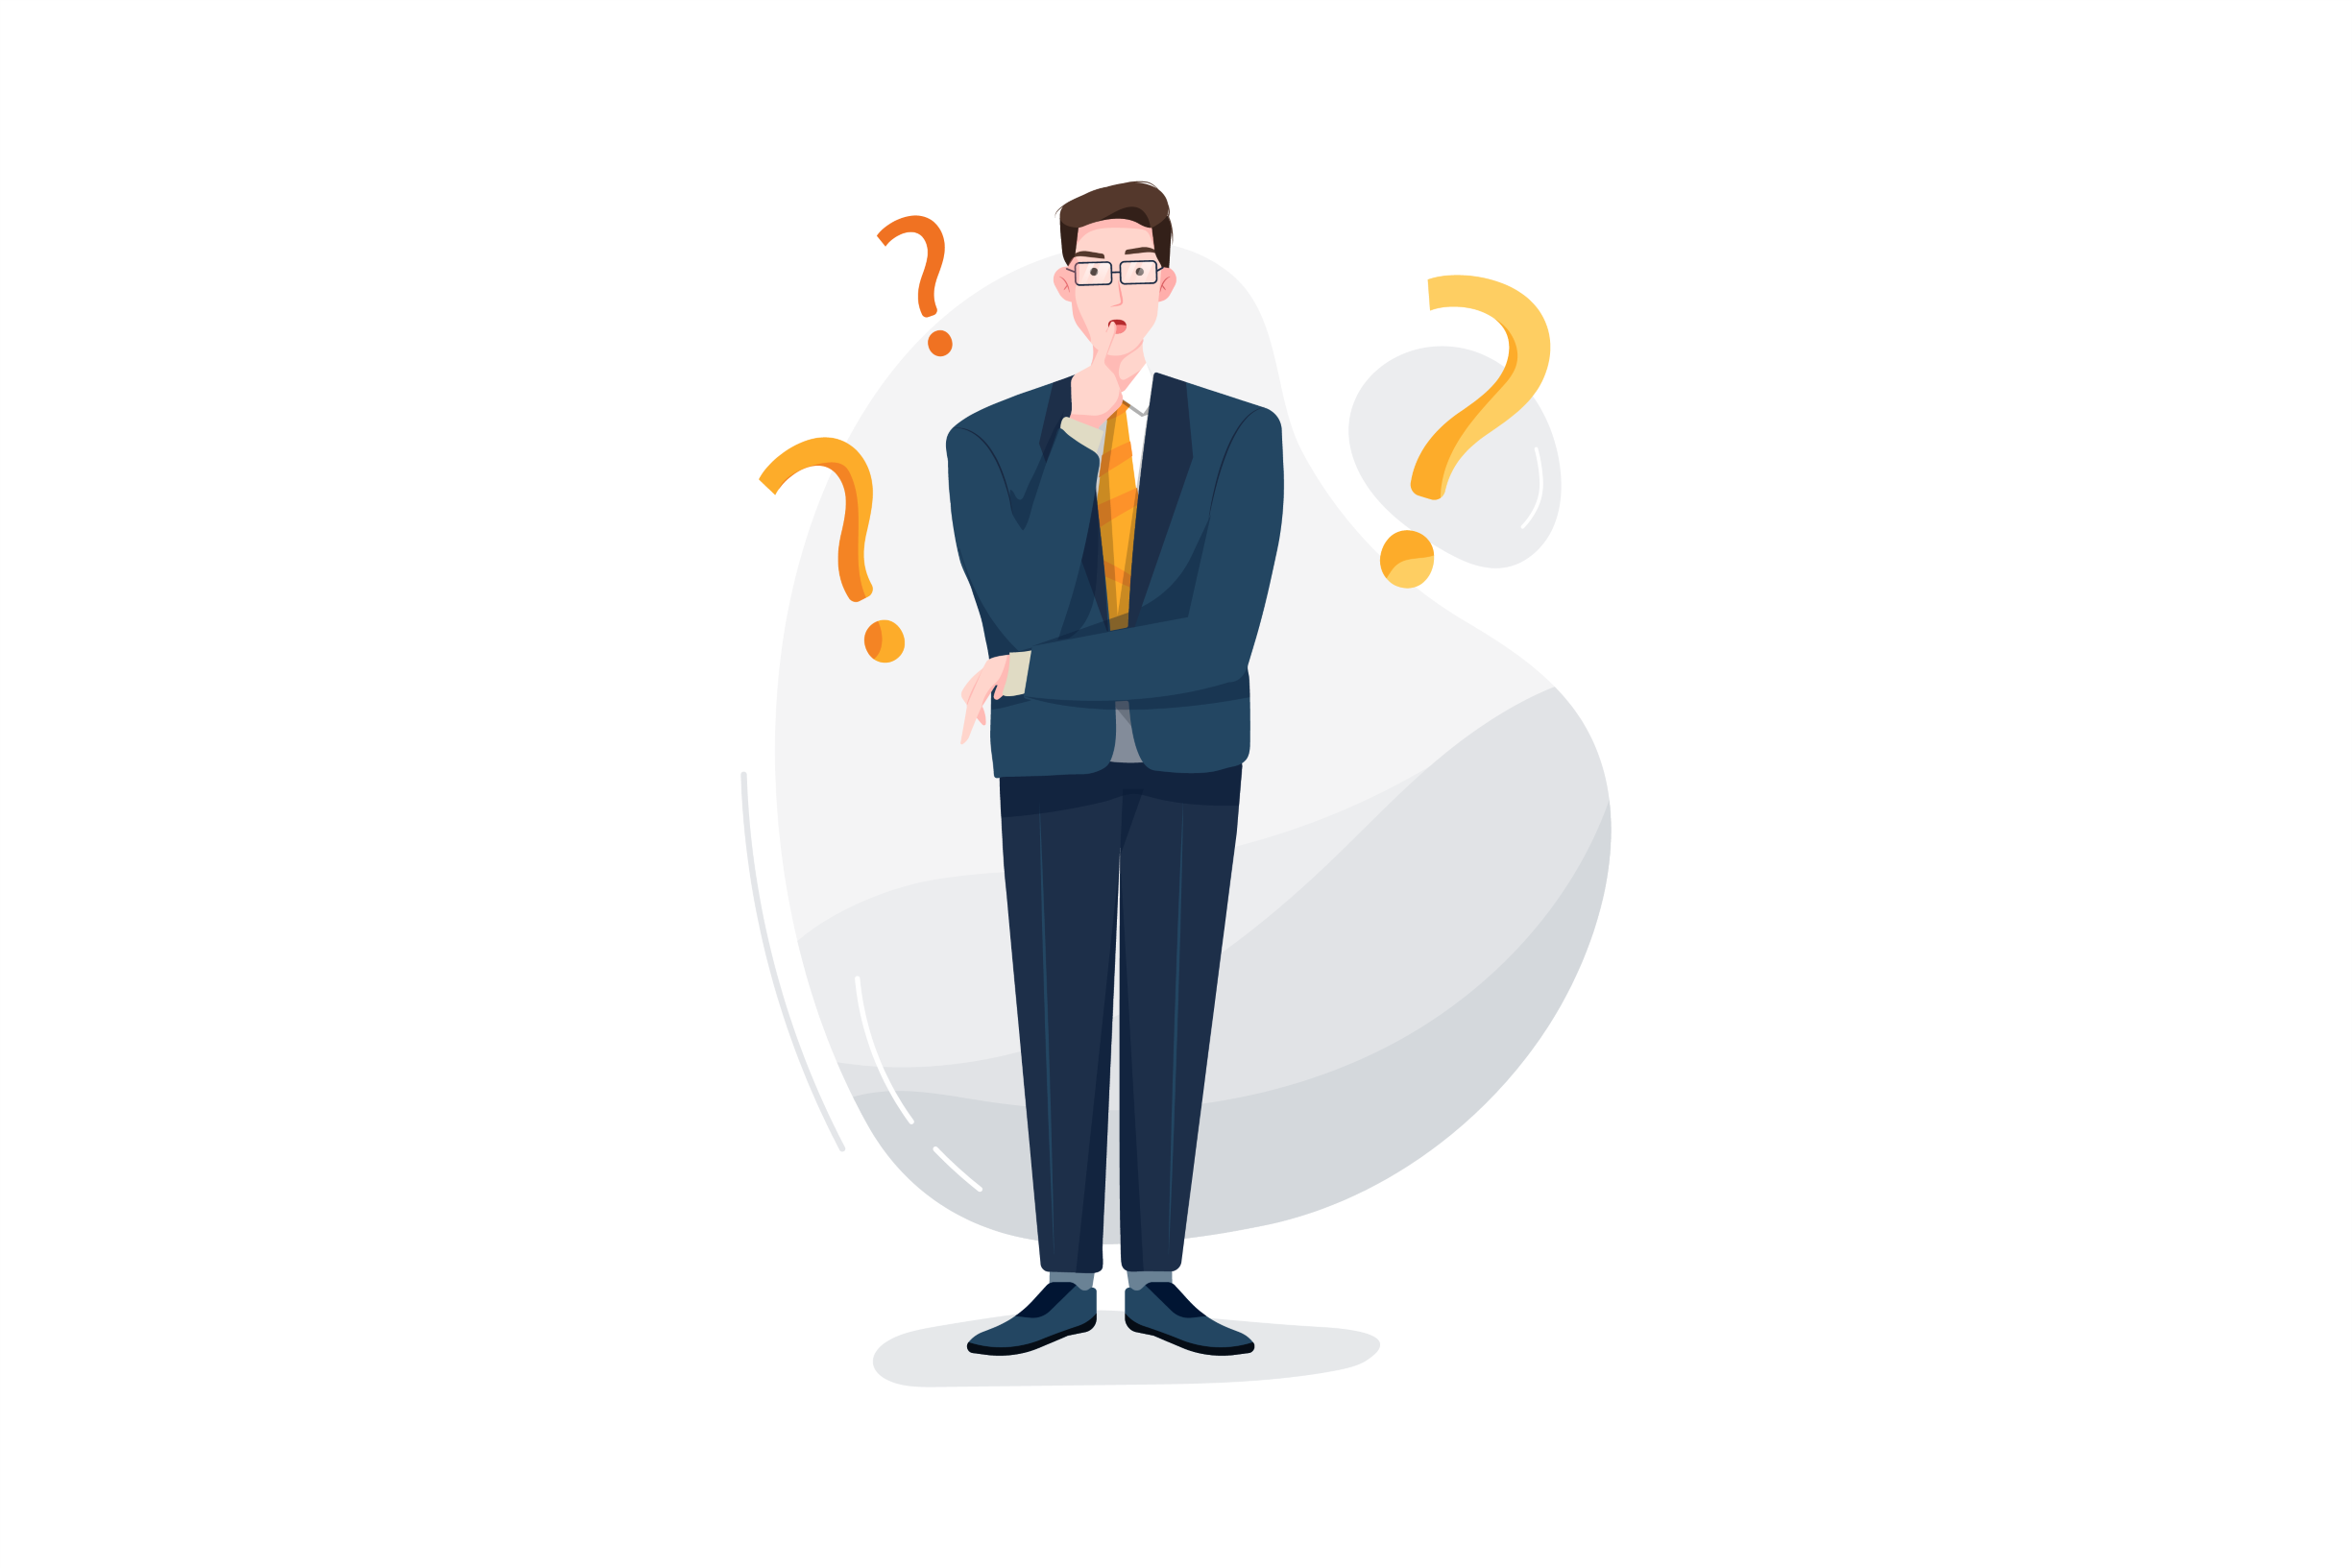 Graphic of a man standing with question marks around him